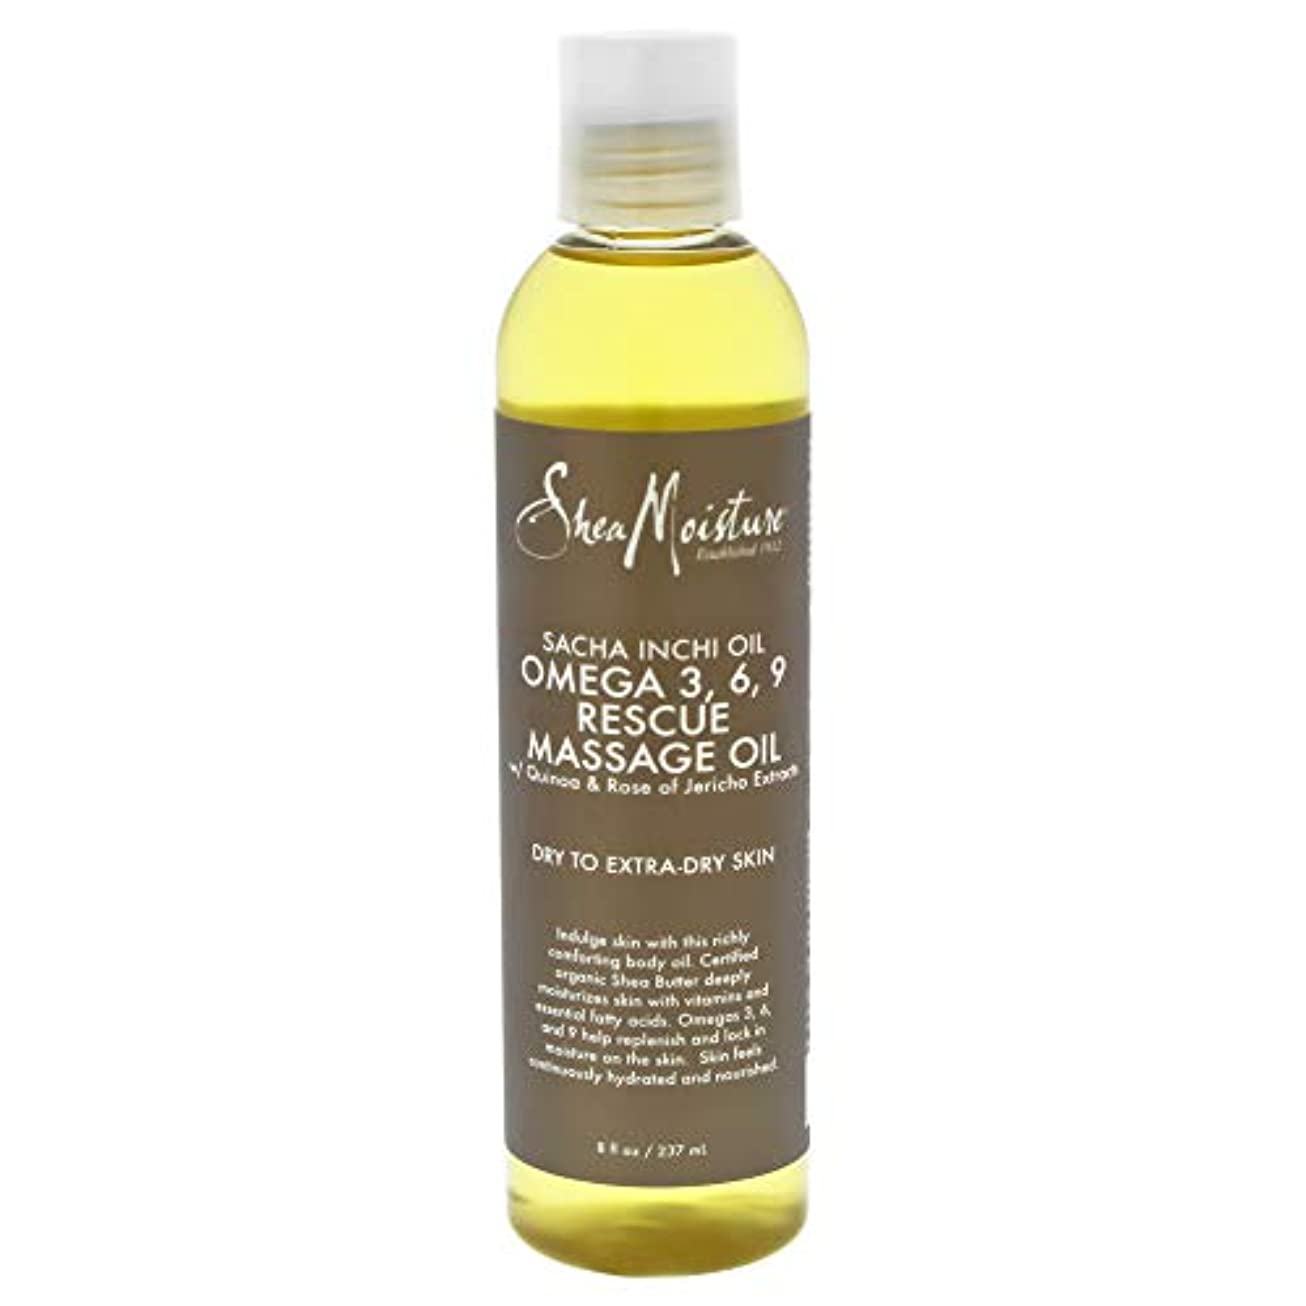 Sacha Inchi Oil Omega-3-6-9 Rescue Massage Oil